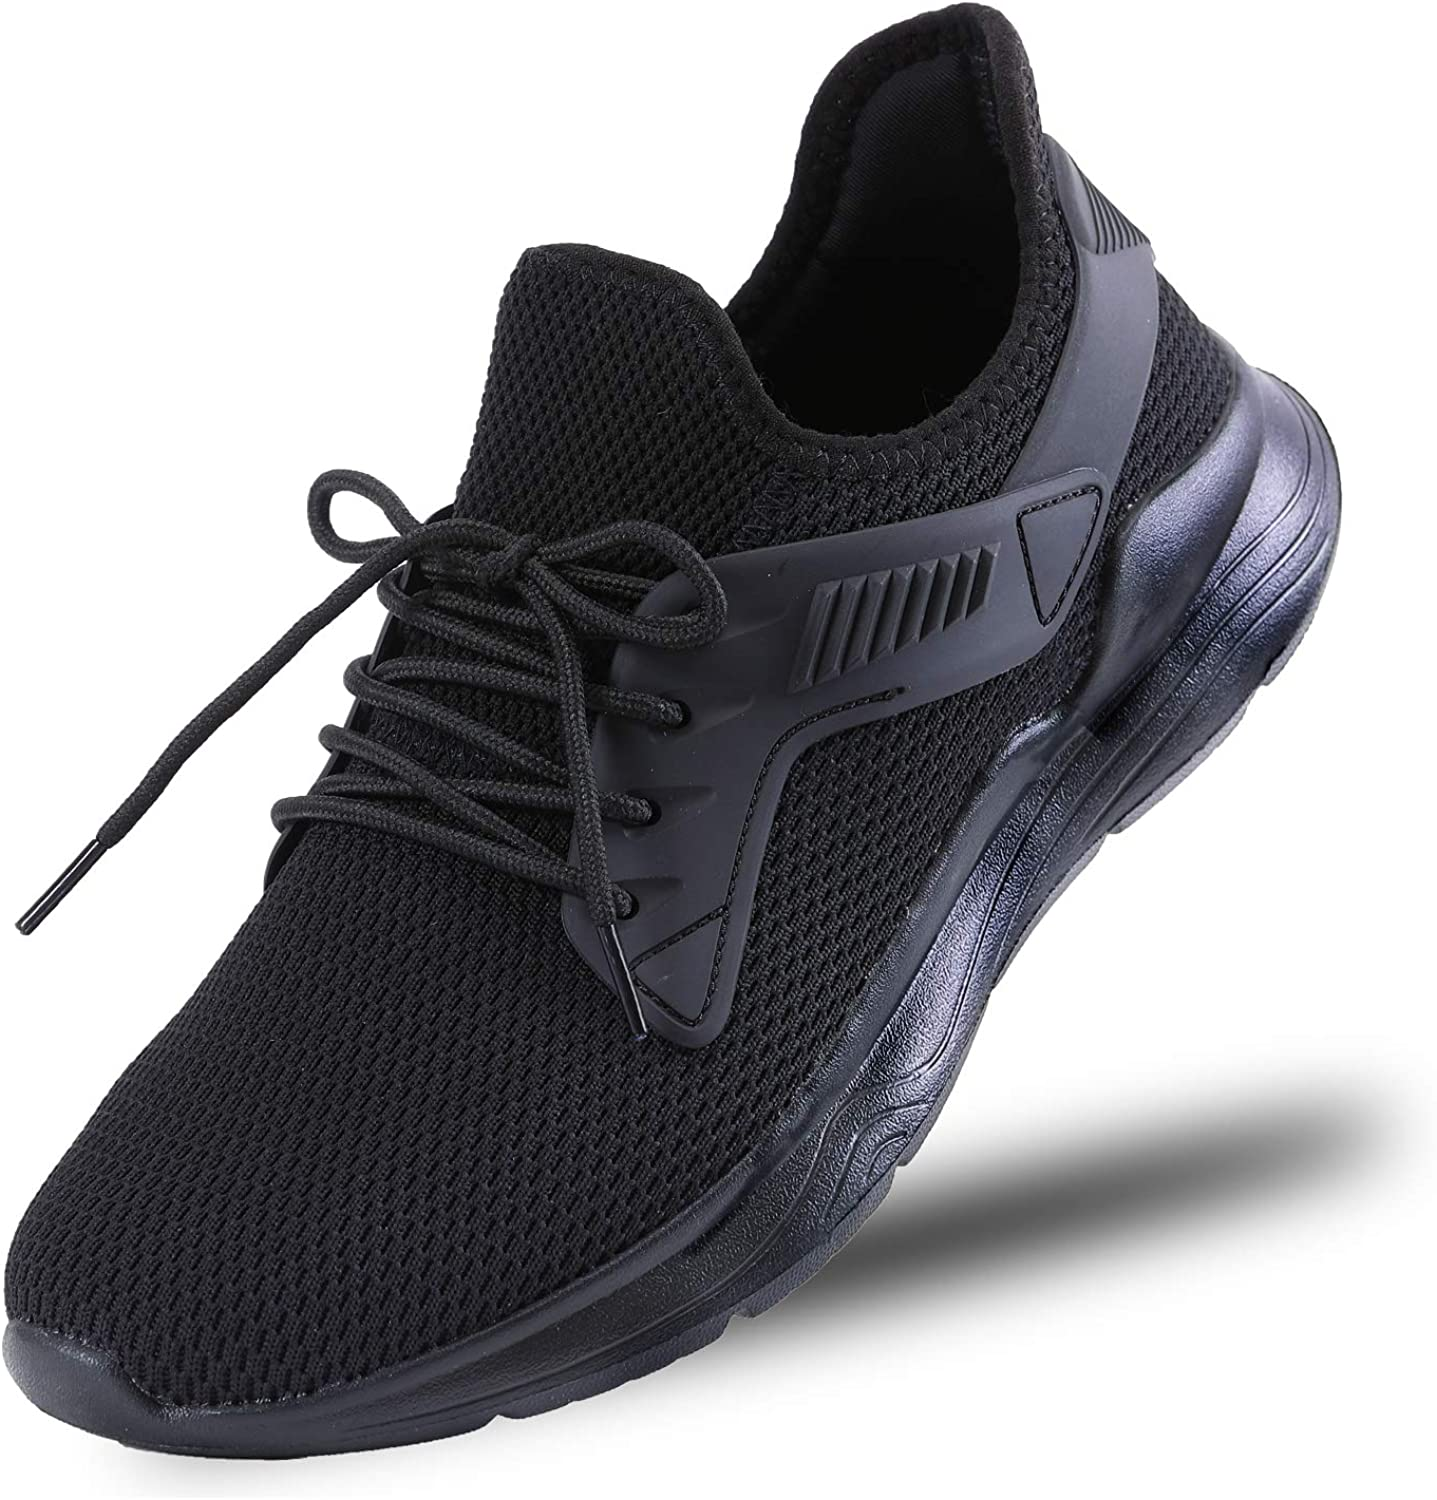 TFO Lightweight Running Shoes Super sale period limited Max 61% OFF Cushioning Men Fashion Breathable